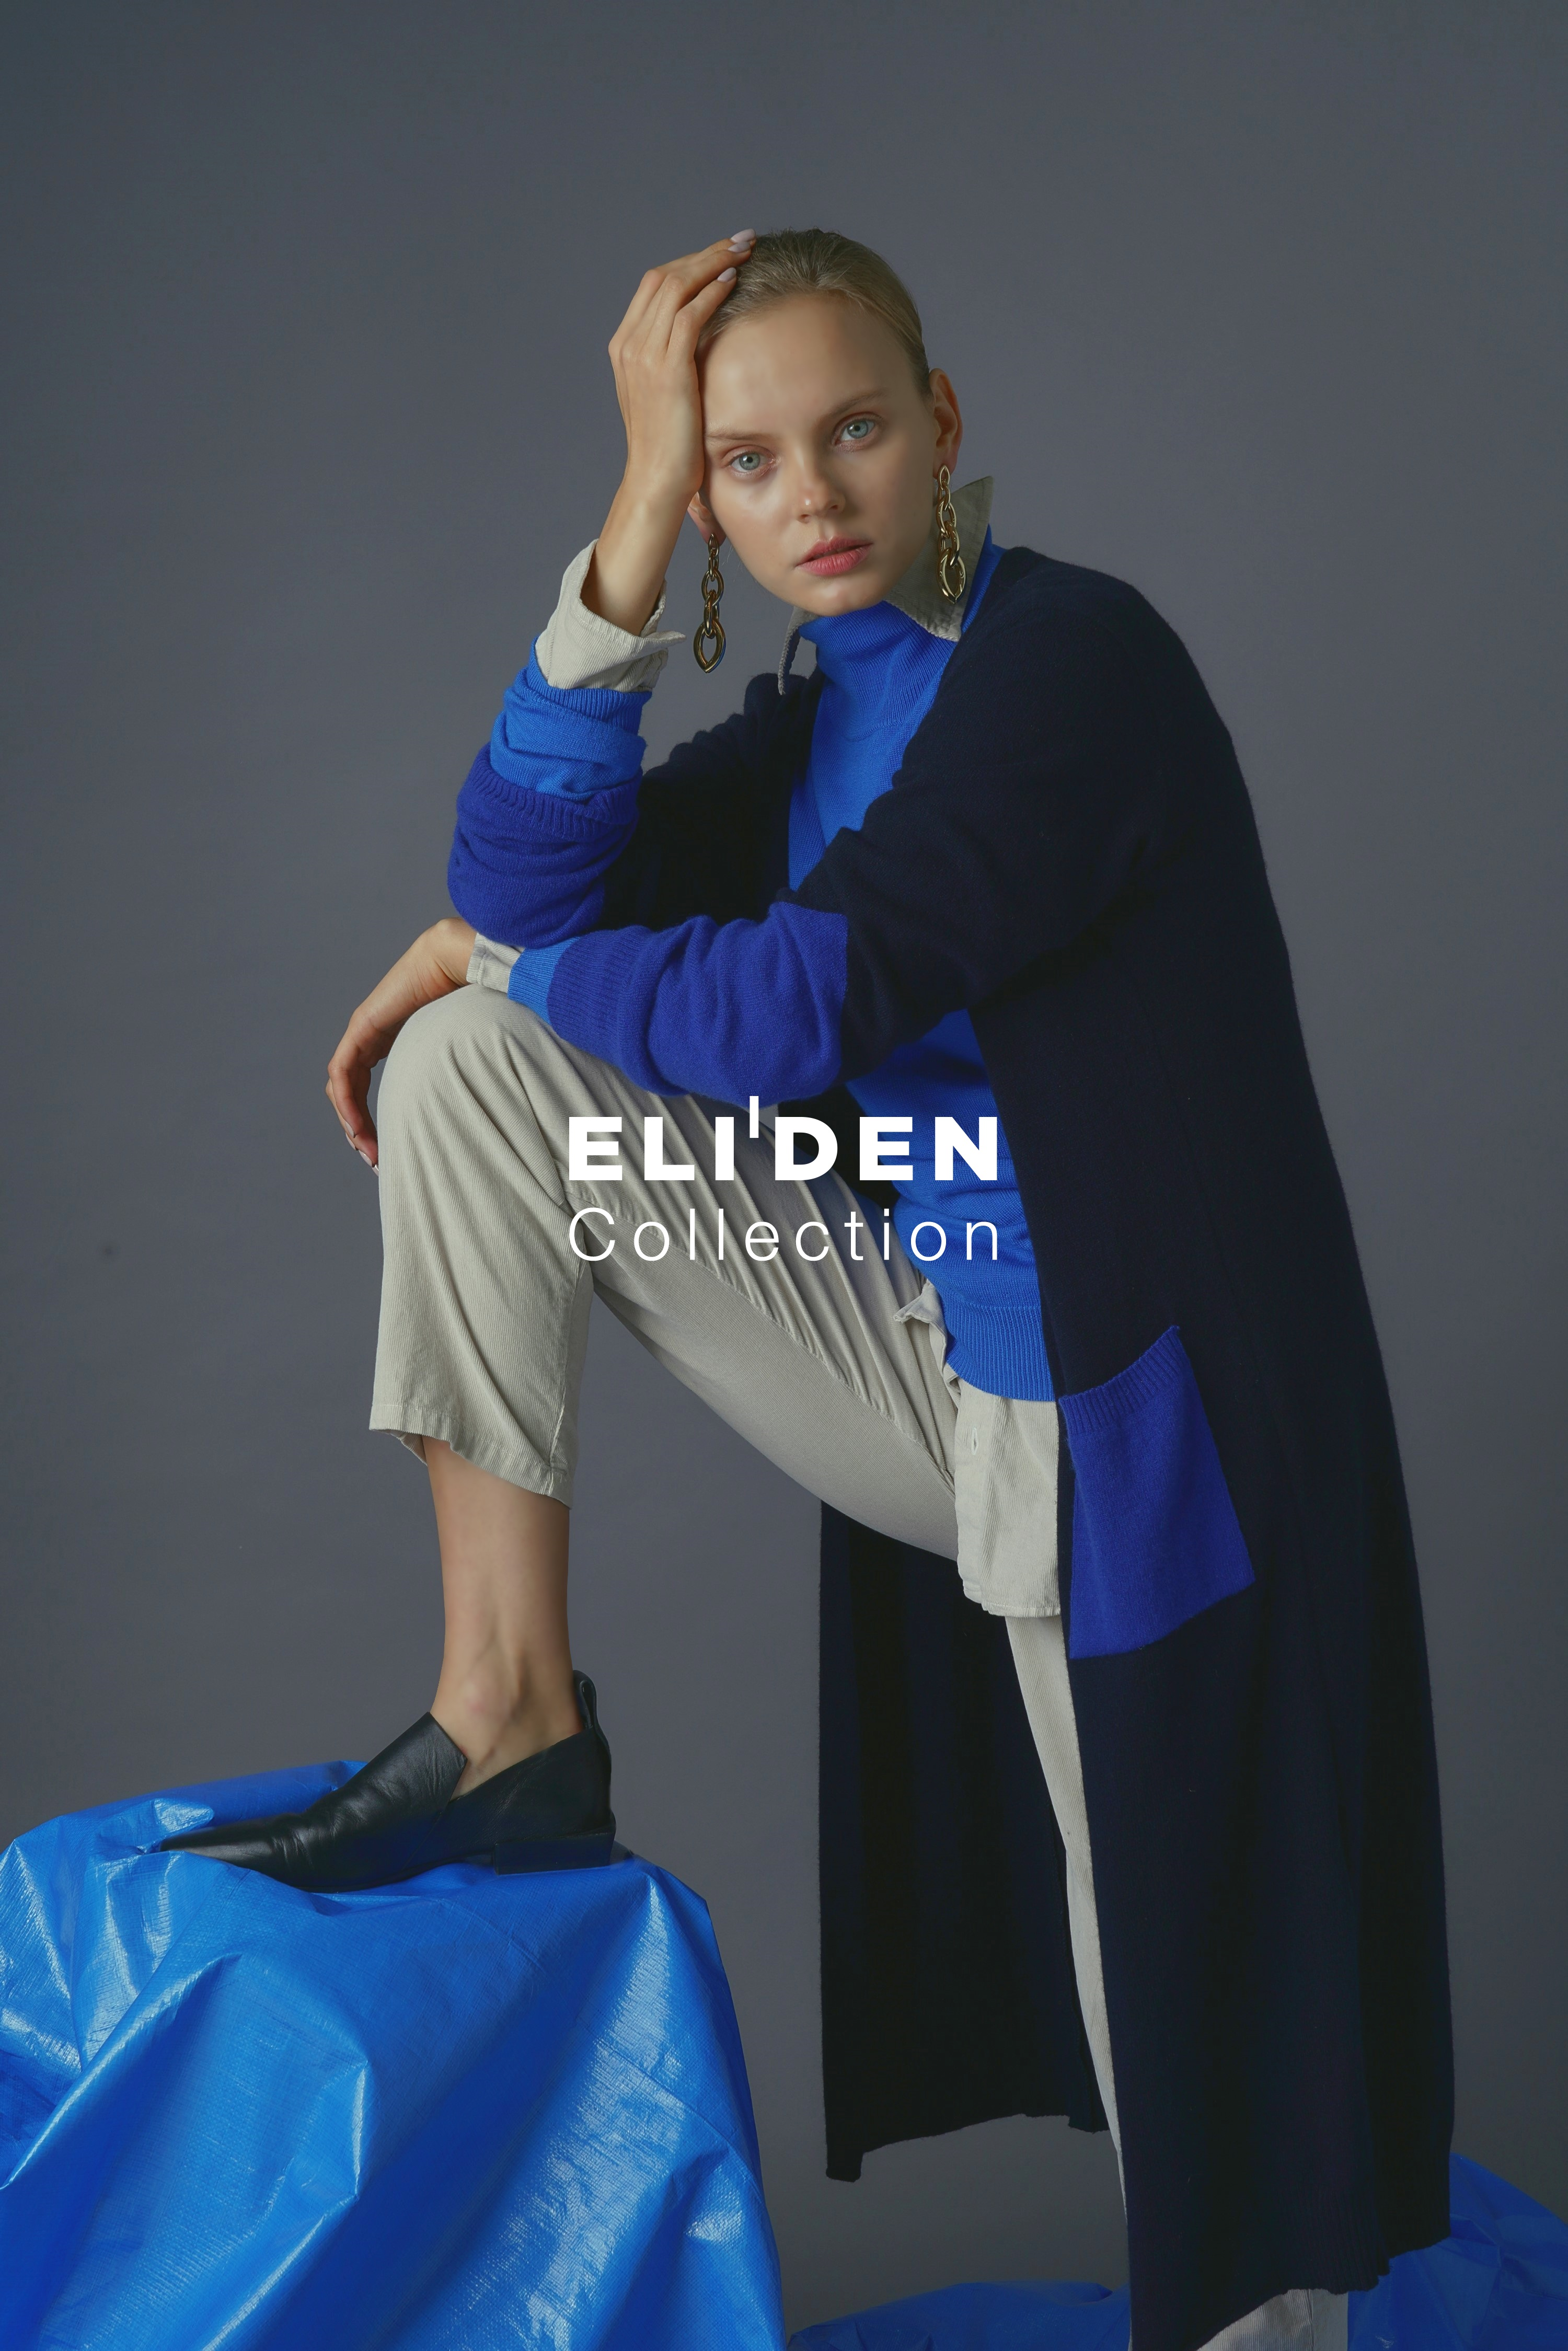 ELIDEN COLLECTION